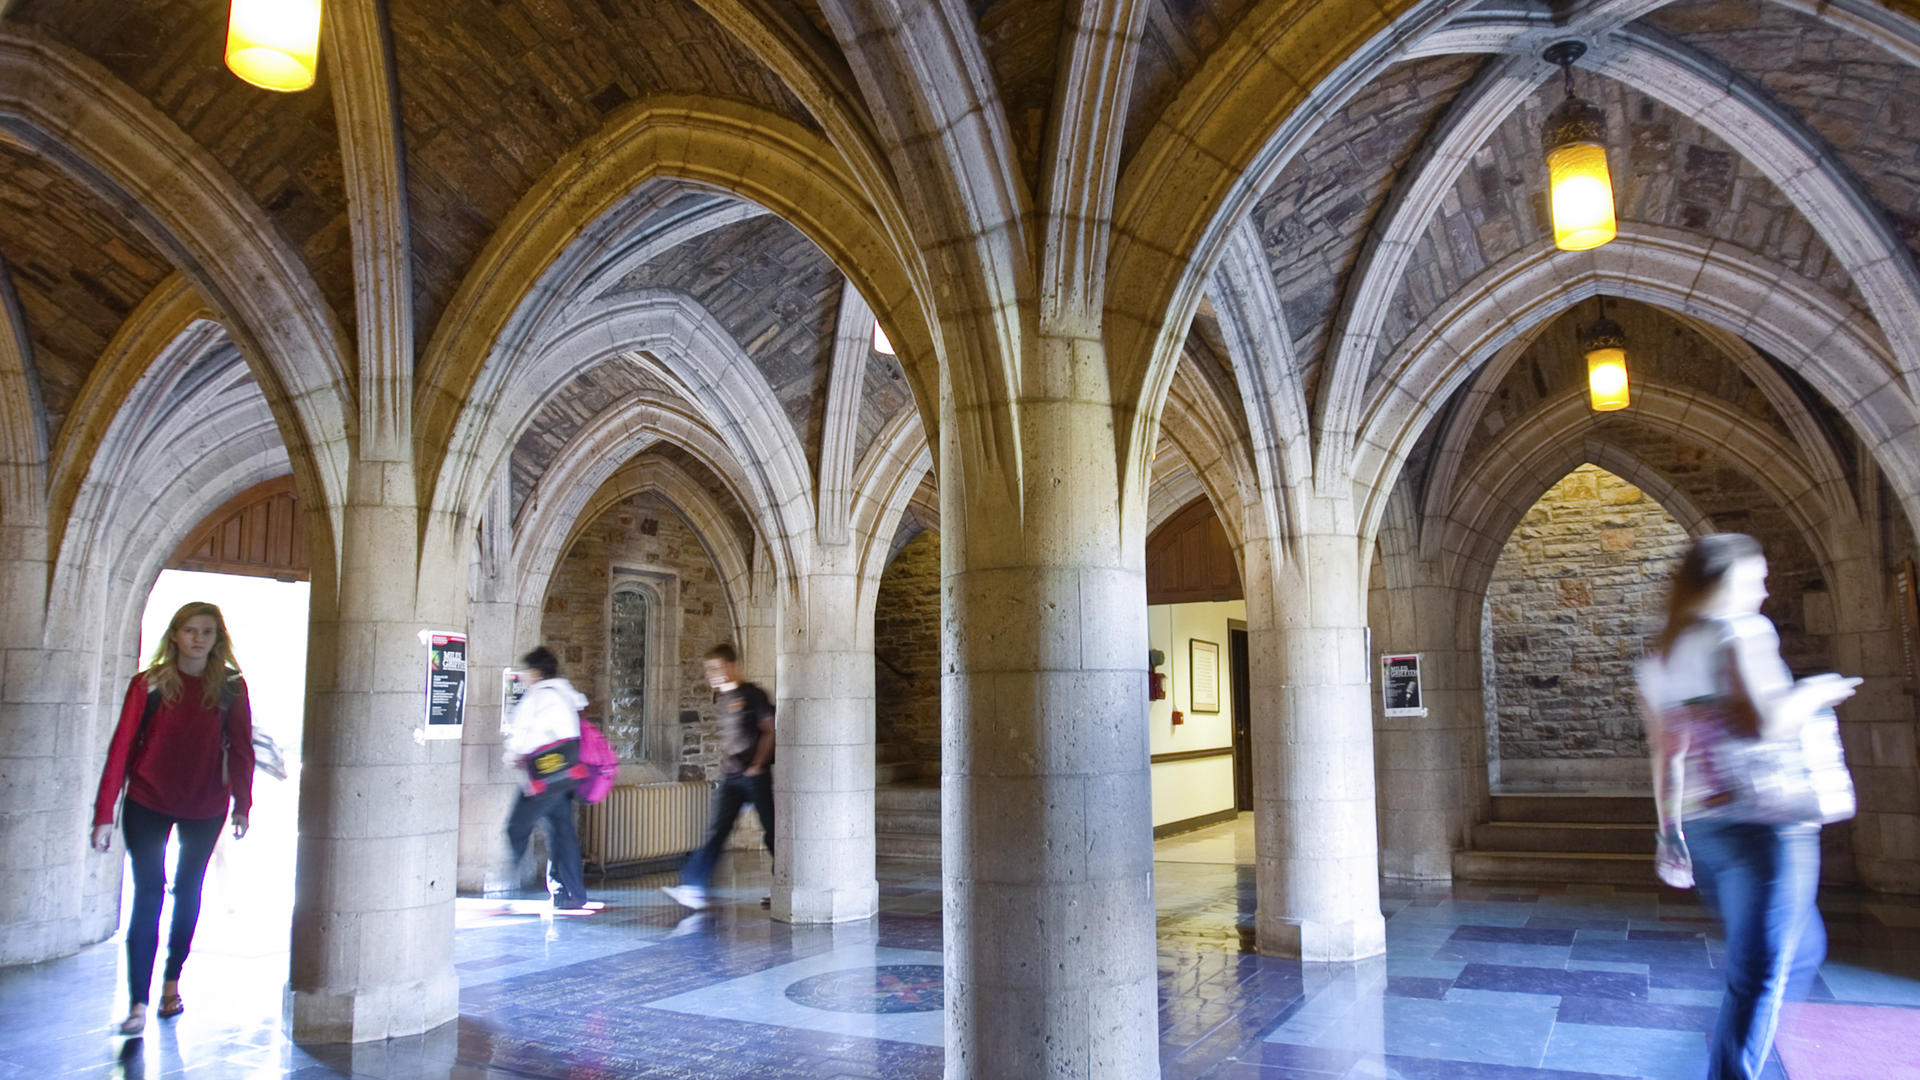 Students come in and out of the Southwestern Hall cloister